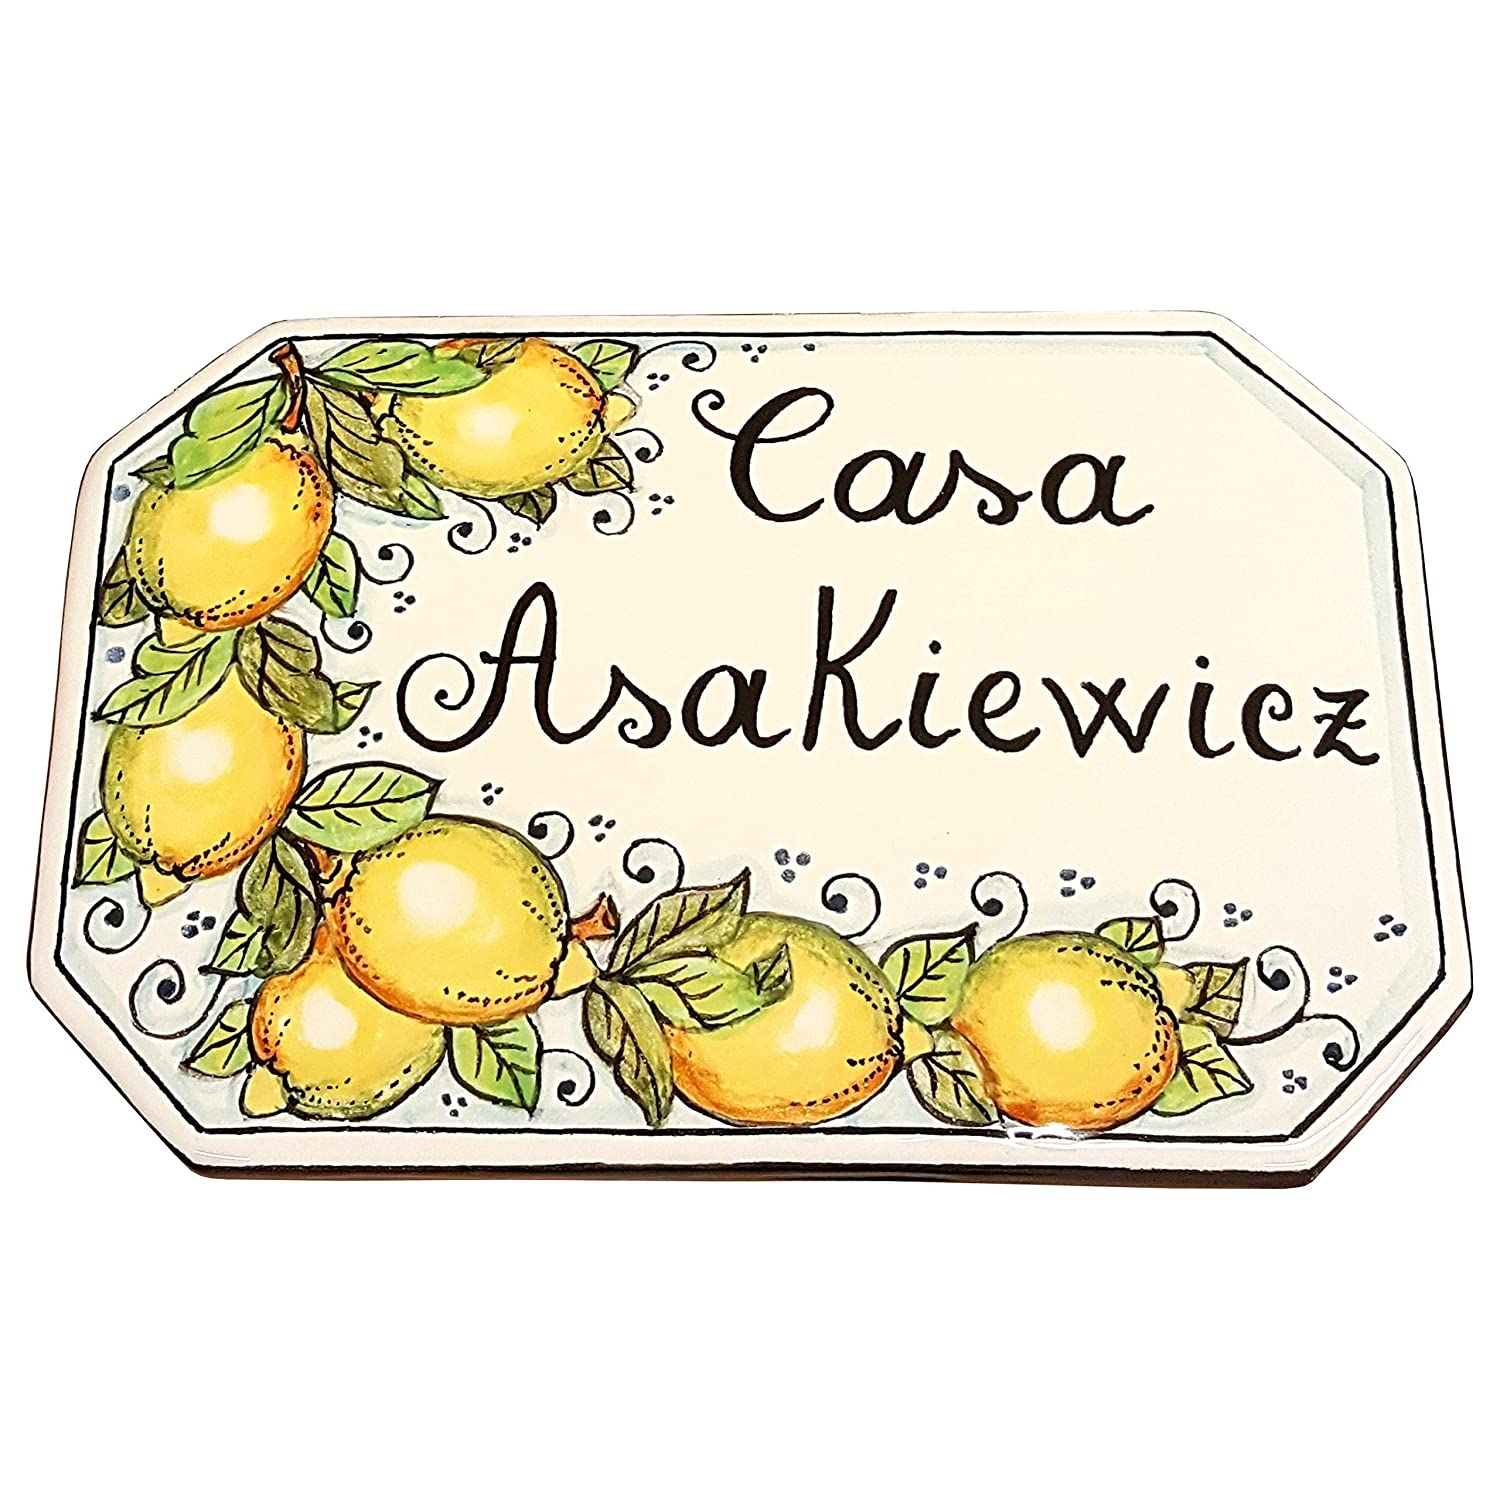 Amazon ceramiche darte parrini italian ceramic art pottery amazon ceramiche darte parrini italian ceramic art pottery tile custom house number civic address plaques decorated lemons hand painted made in dailygadgetfo Images